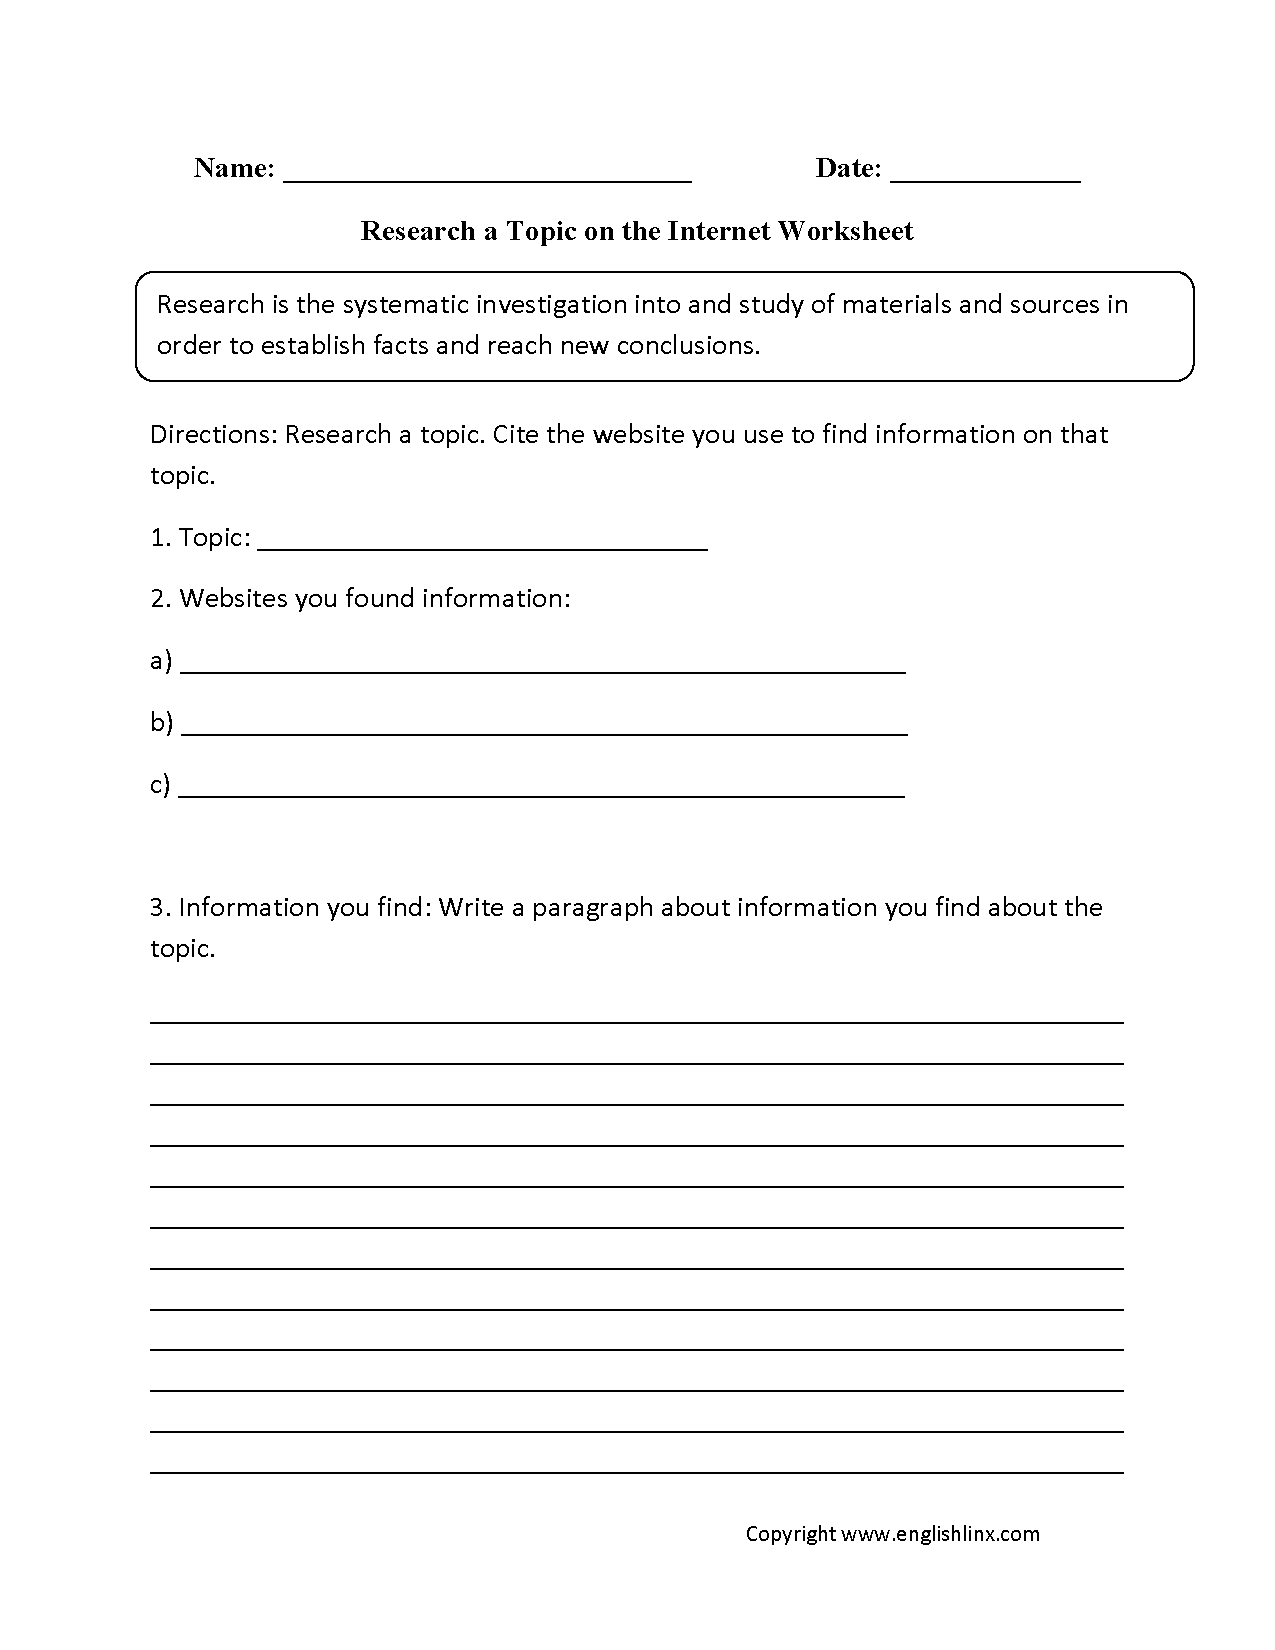 Aldiablosus  Seductive Englishlinxcom  Research Worksheets With Fair On The Internet Worksheet With Nice Telescope Worksheets Also Ay Phonics Worksheets In Addition Numbers Tracing Worksheets   And Mode And Median Worksheets As Well As Th Grade Place Value Worksheets Additionally English Grammar Worksheets For Class  From Englishlinxcom With Aldiablosus  Fair Englishlinxcom  Research Worksheets With Nice On The Internet Worksheet And Seductive Telescope Worksheets Also Ay Phonics Worksheets In Addition Numbers Tracing Worksheets   From Englishlinxcom